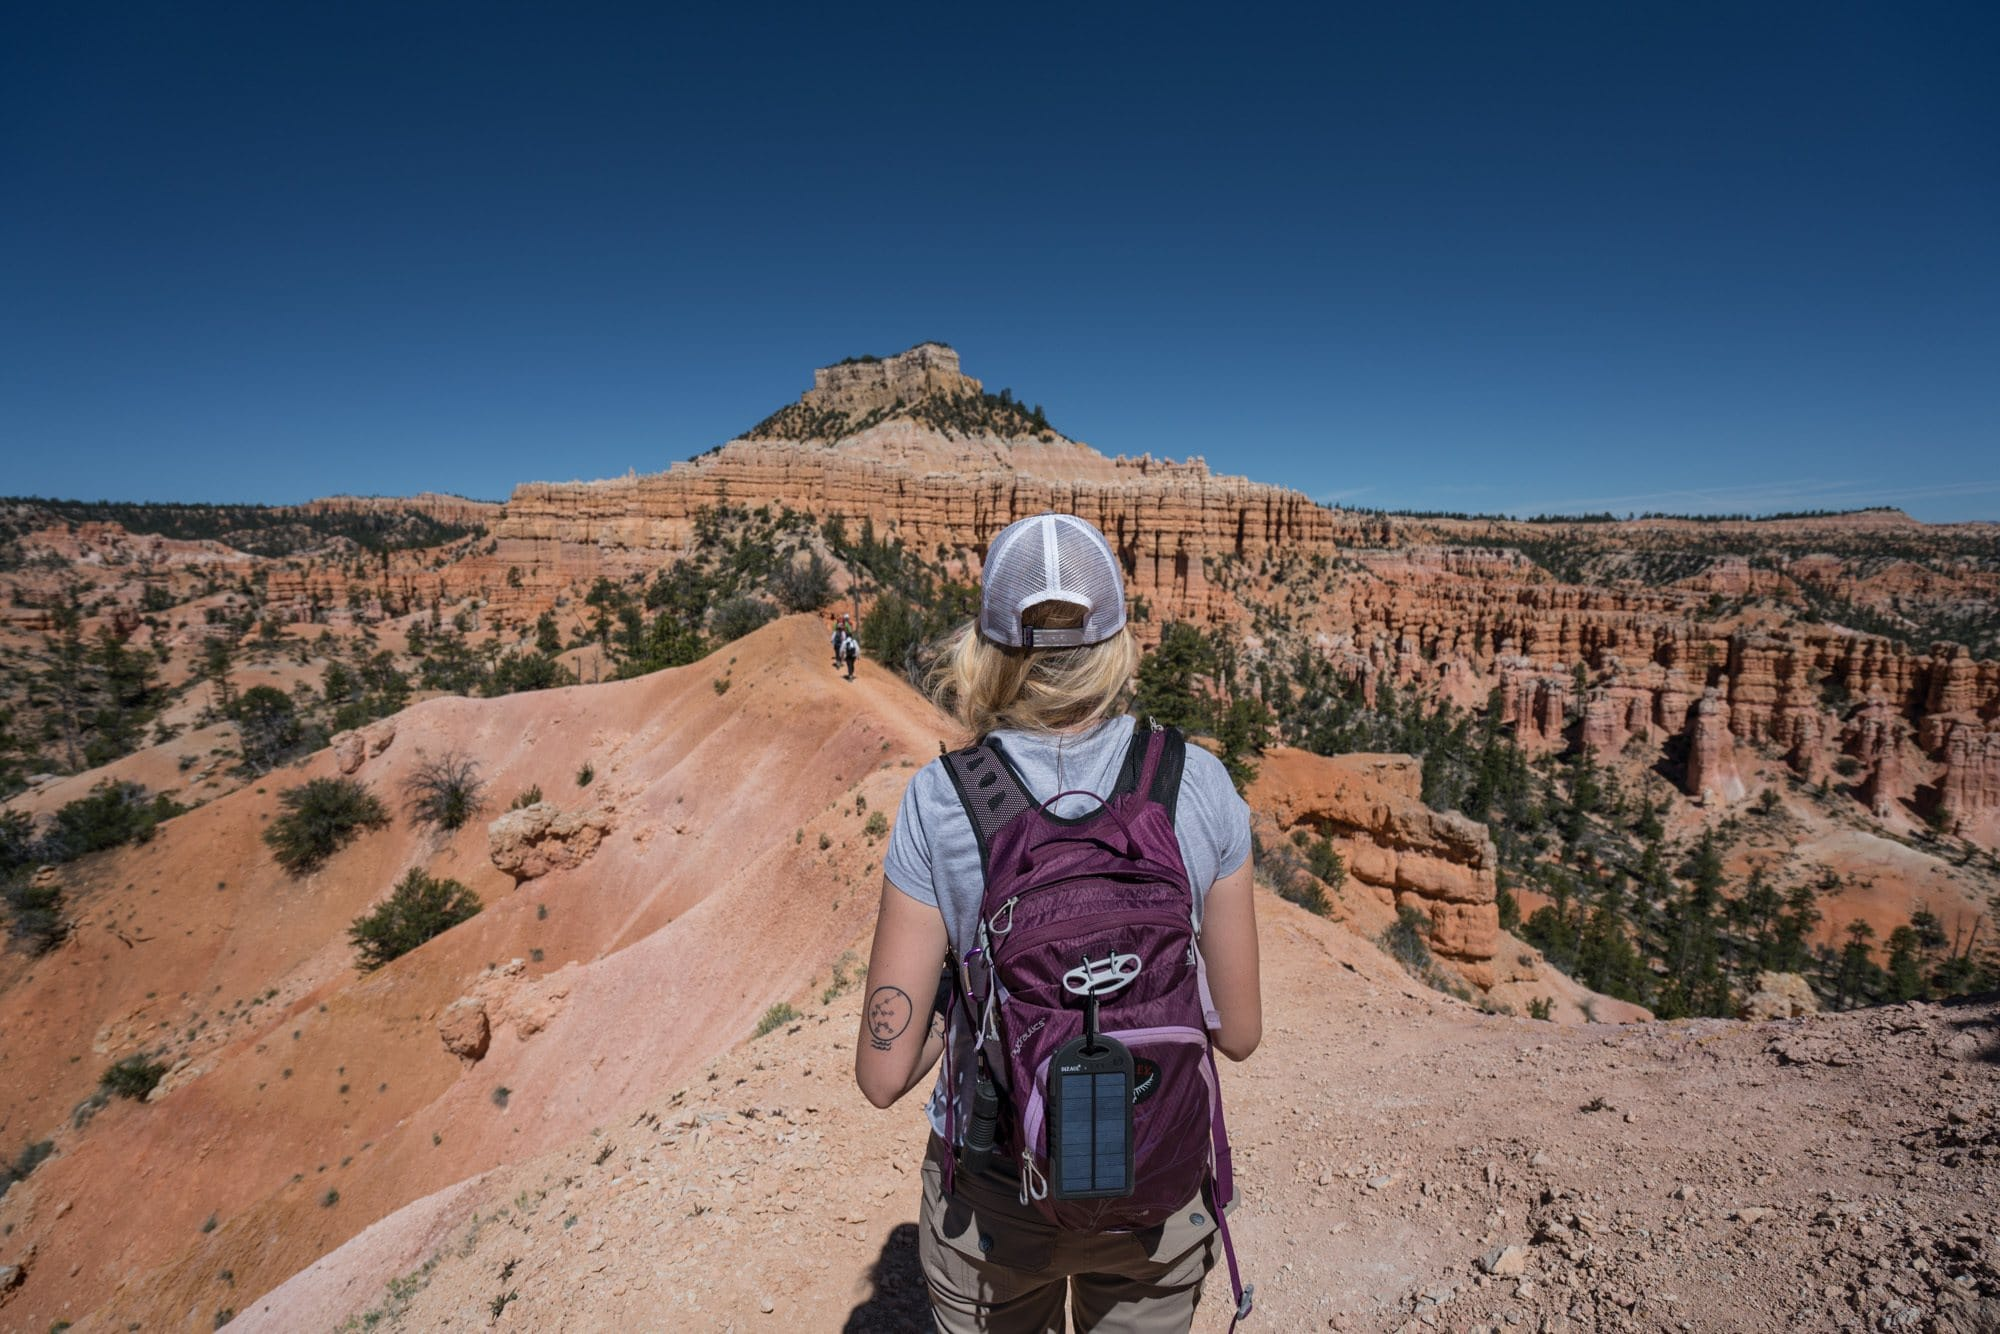 Fairyland Loop // Explore Utah National Parks in this 10-day road trip itinerary w/ the best hikes, activities & camping in Zion, Bryce, Capitol Reef, Arches & Canyonlands.